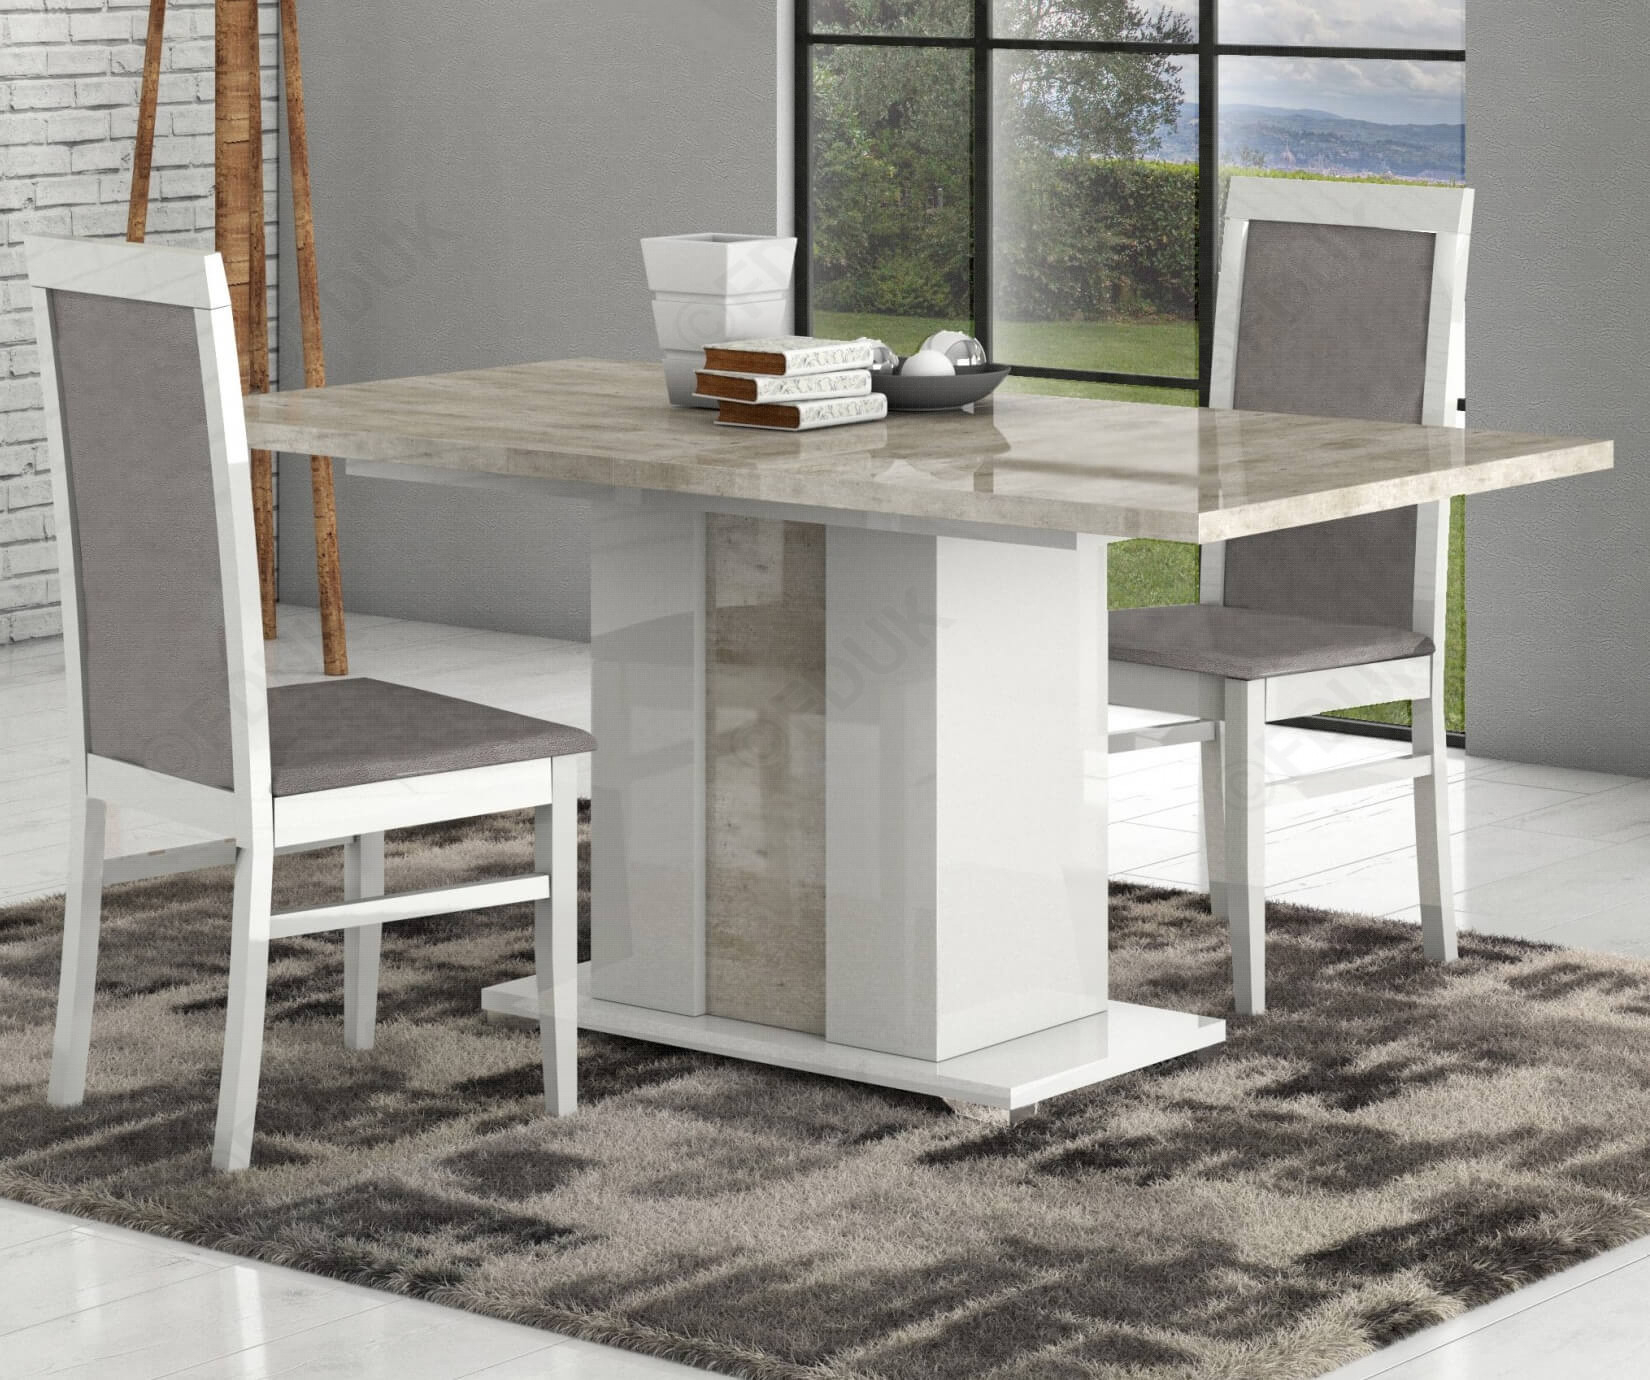 San Martino Palladio Rectangular Extension Dining Table With 6 Chairs With Regard To Most Recent Martino Dining Tables (View 9 of 25)